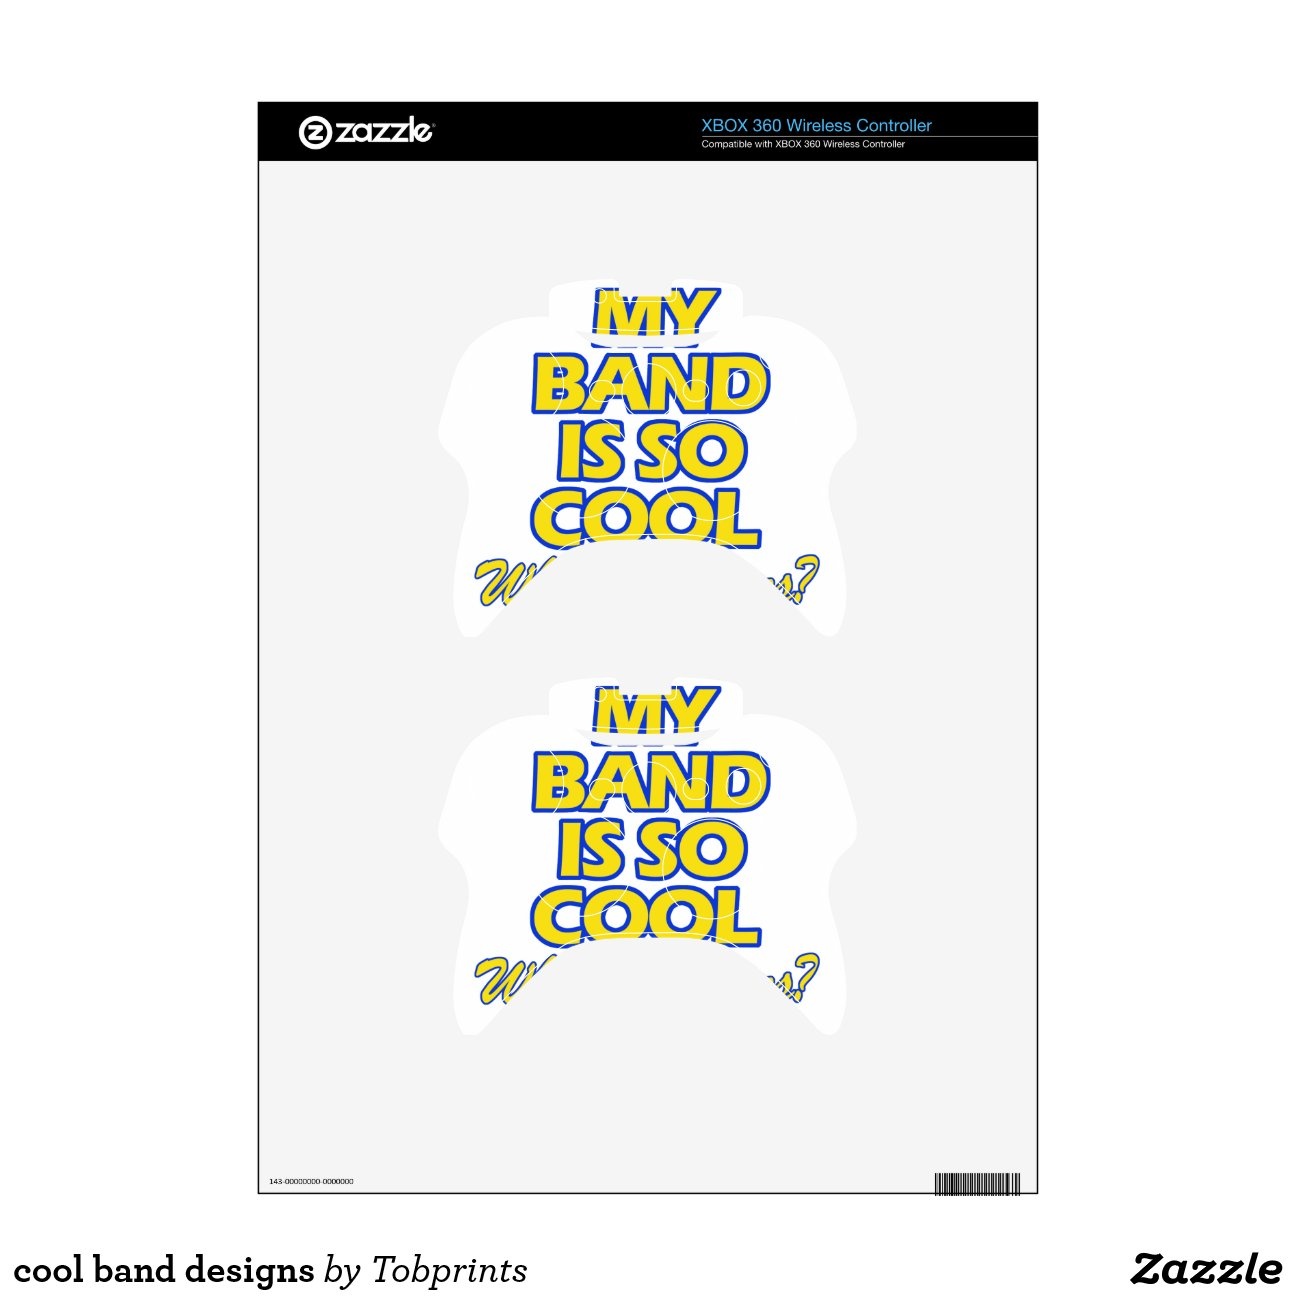 cool_band_designs_xbox_360_controller_skin r0cd91dc40a364026b537dcfee60773d4_fhl4f_8byvr_1200?resize\\\=665%2C665 bobcat s100 wiring diagrams kuryakyn wiring diagram \u2022 45 63 74 91  at virtualis.co